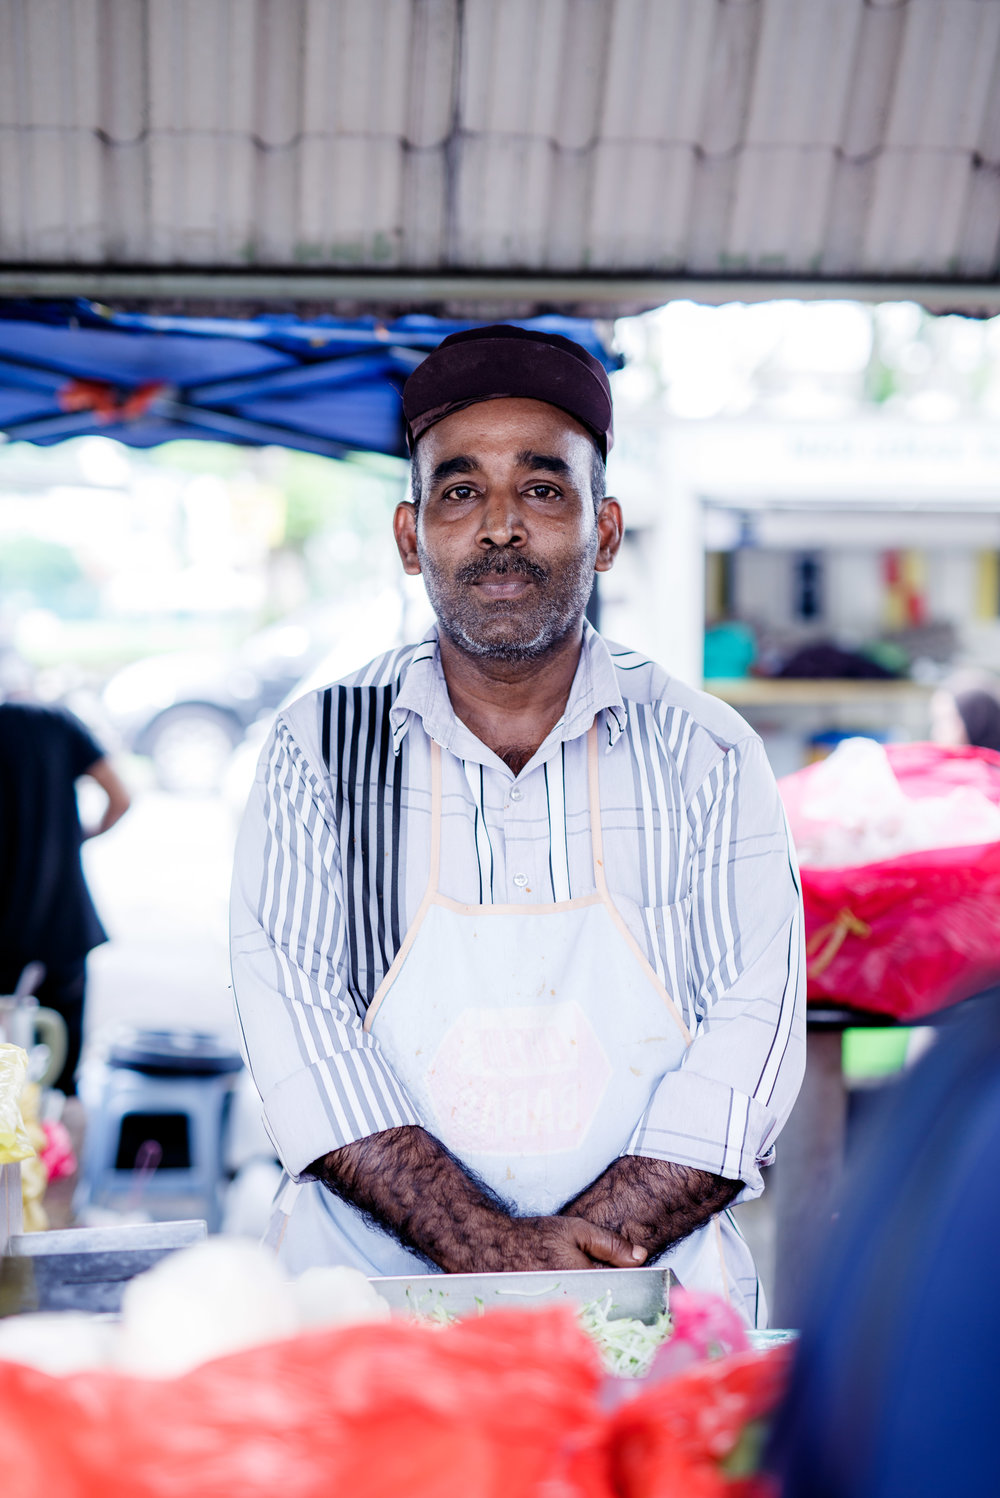 Sime Darby - People of  Subang - Hussein - DDY_3468 - Photo by All Is Amazing.jpg